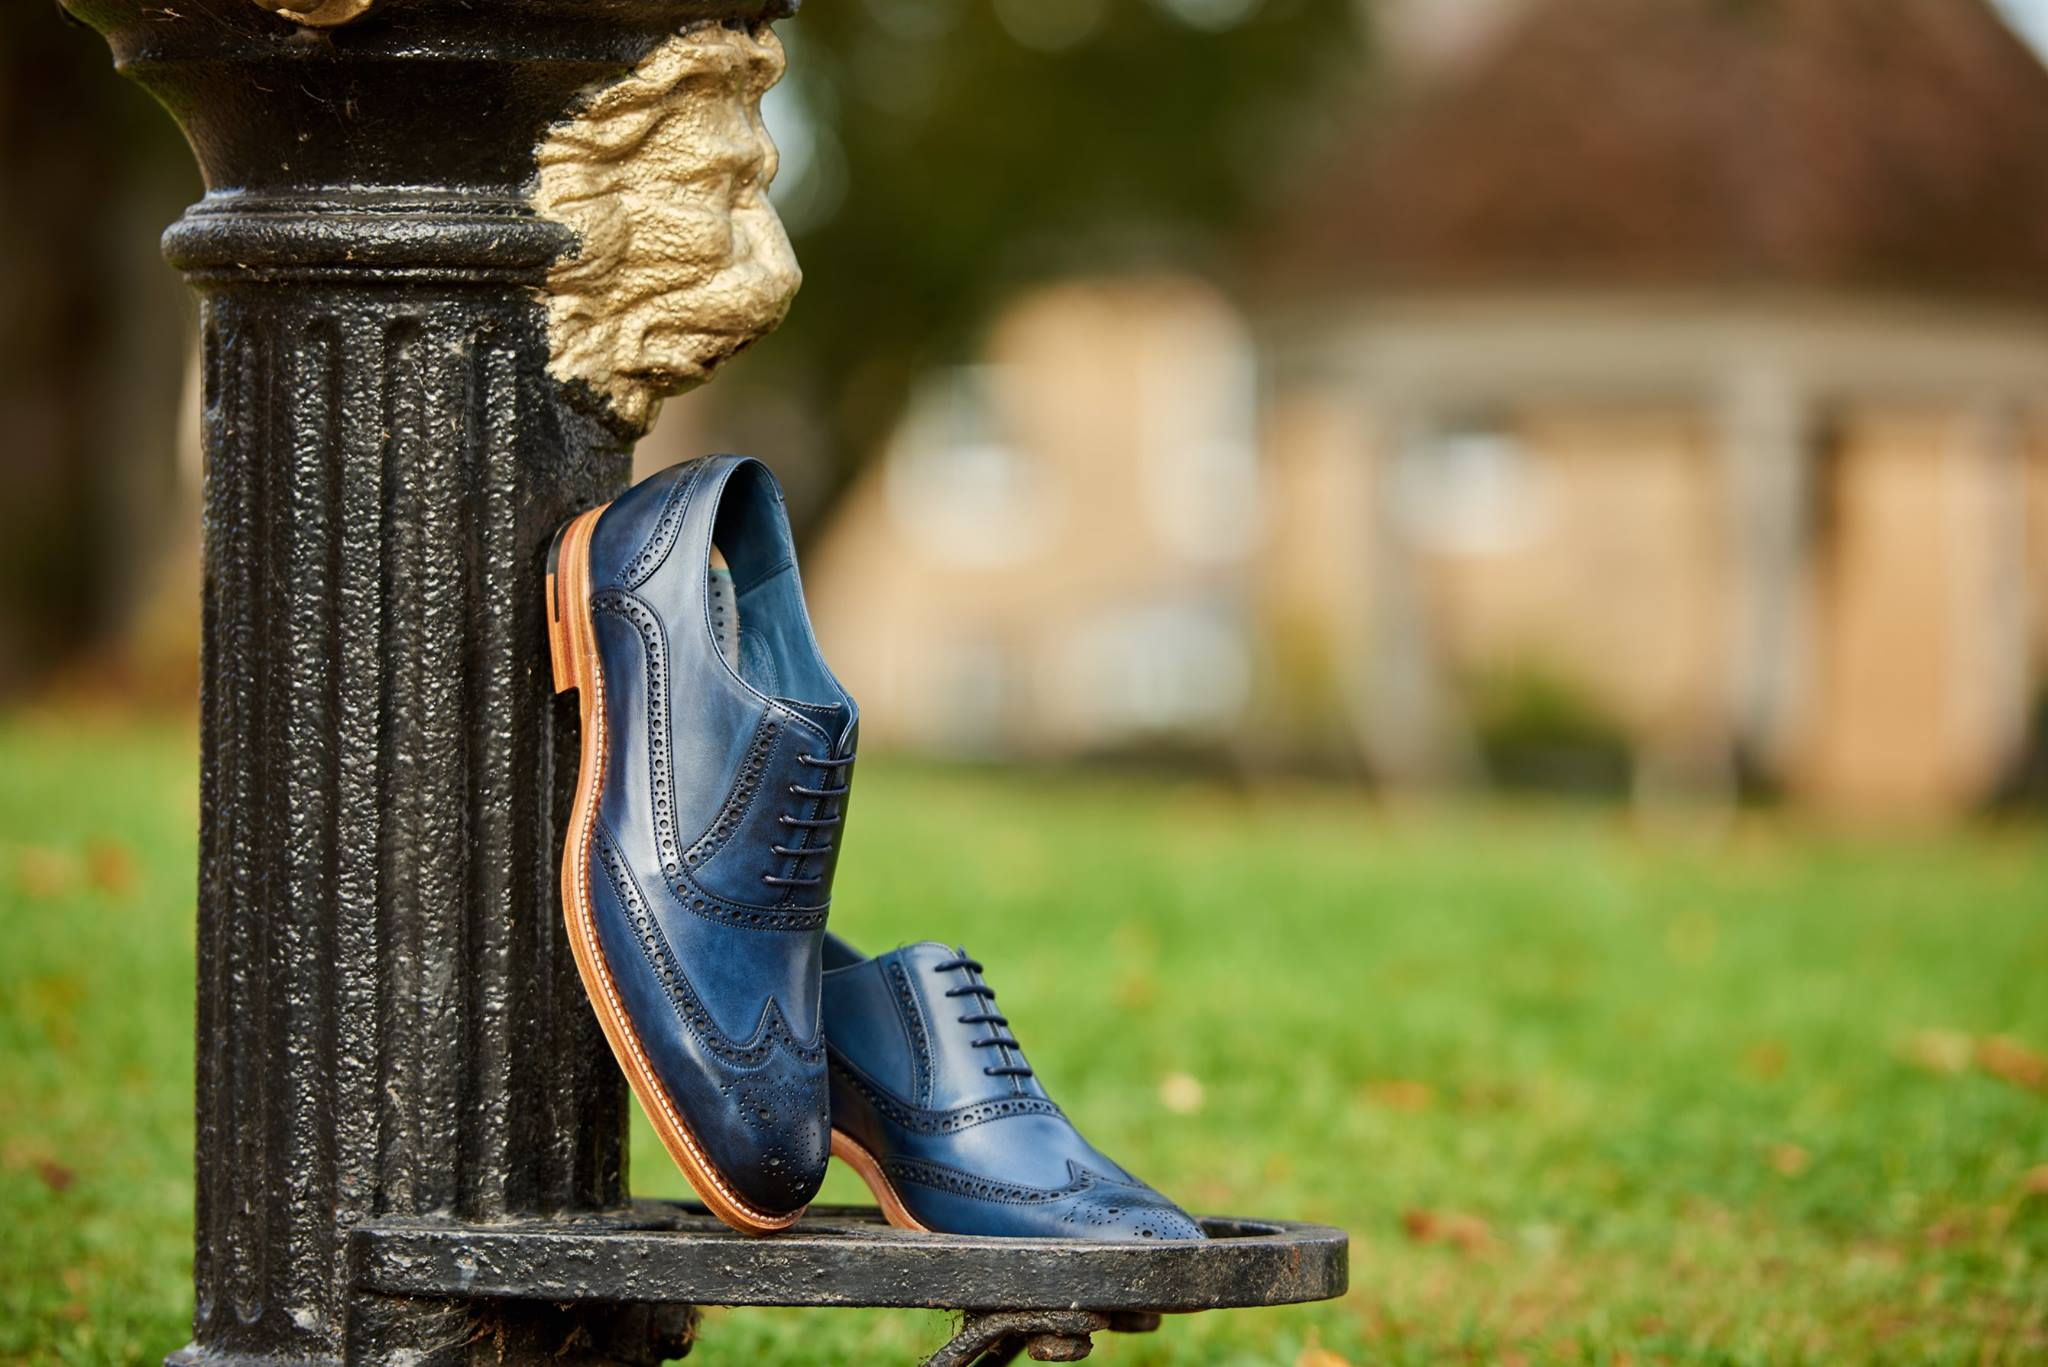 Valiant - Men's Handmade Leather Brogue Oxford By Barker